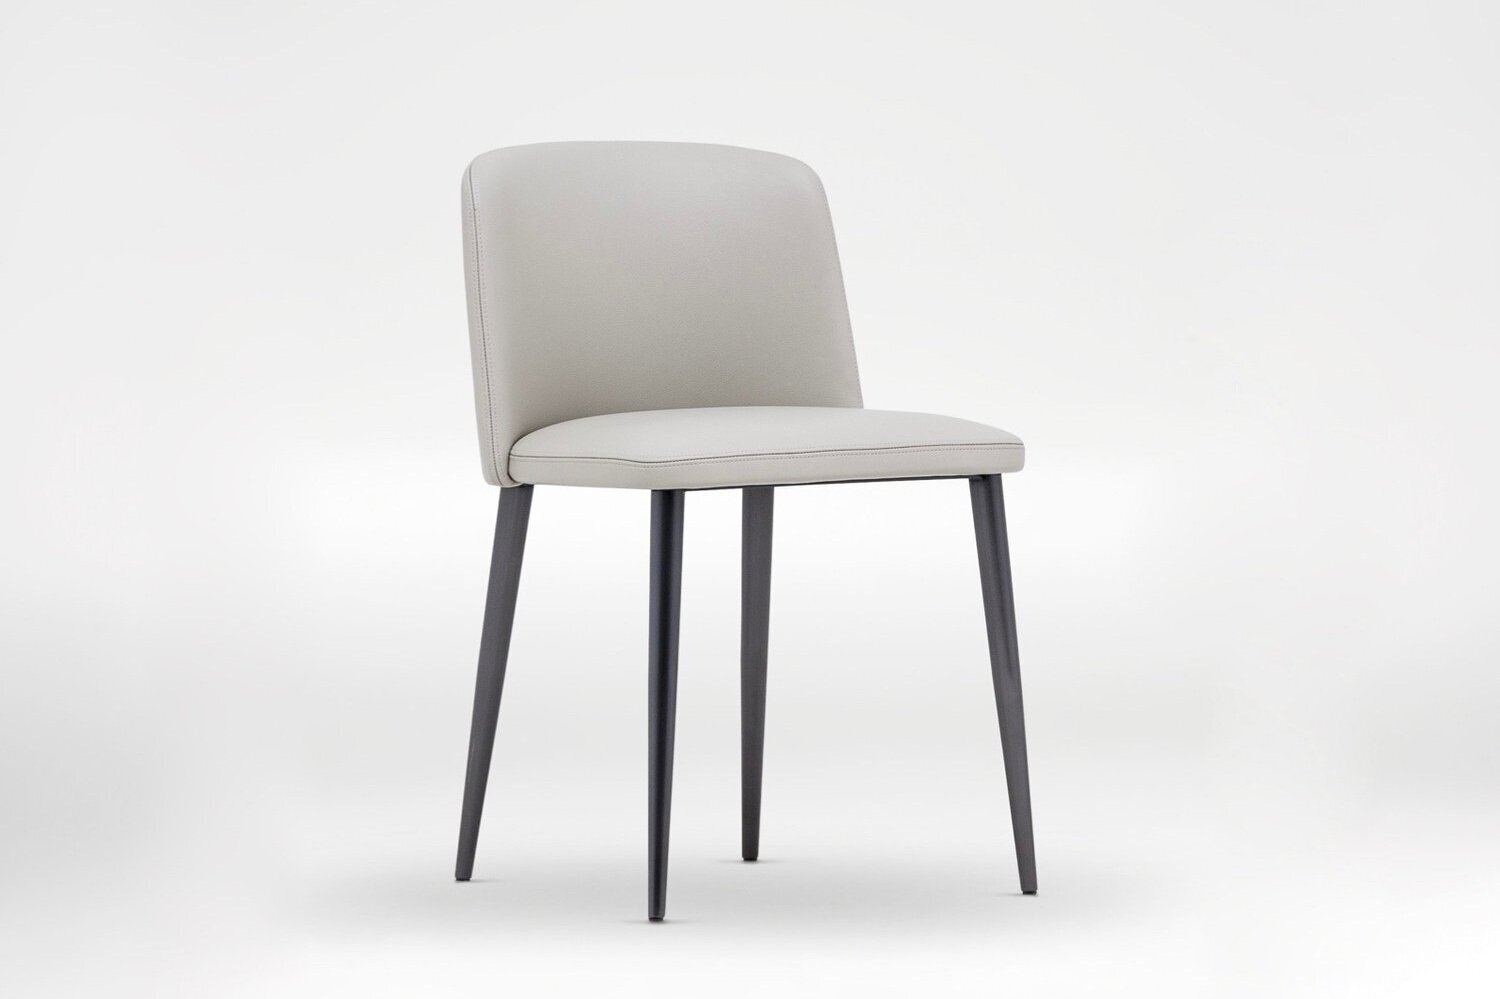 Dining Chairs Designer Dining Chair Contemporary Dining Chair Luxury Dining Room Chairs Sydney Camerich Au